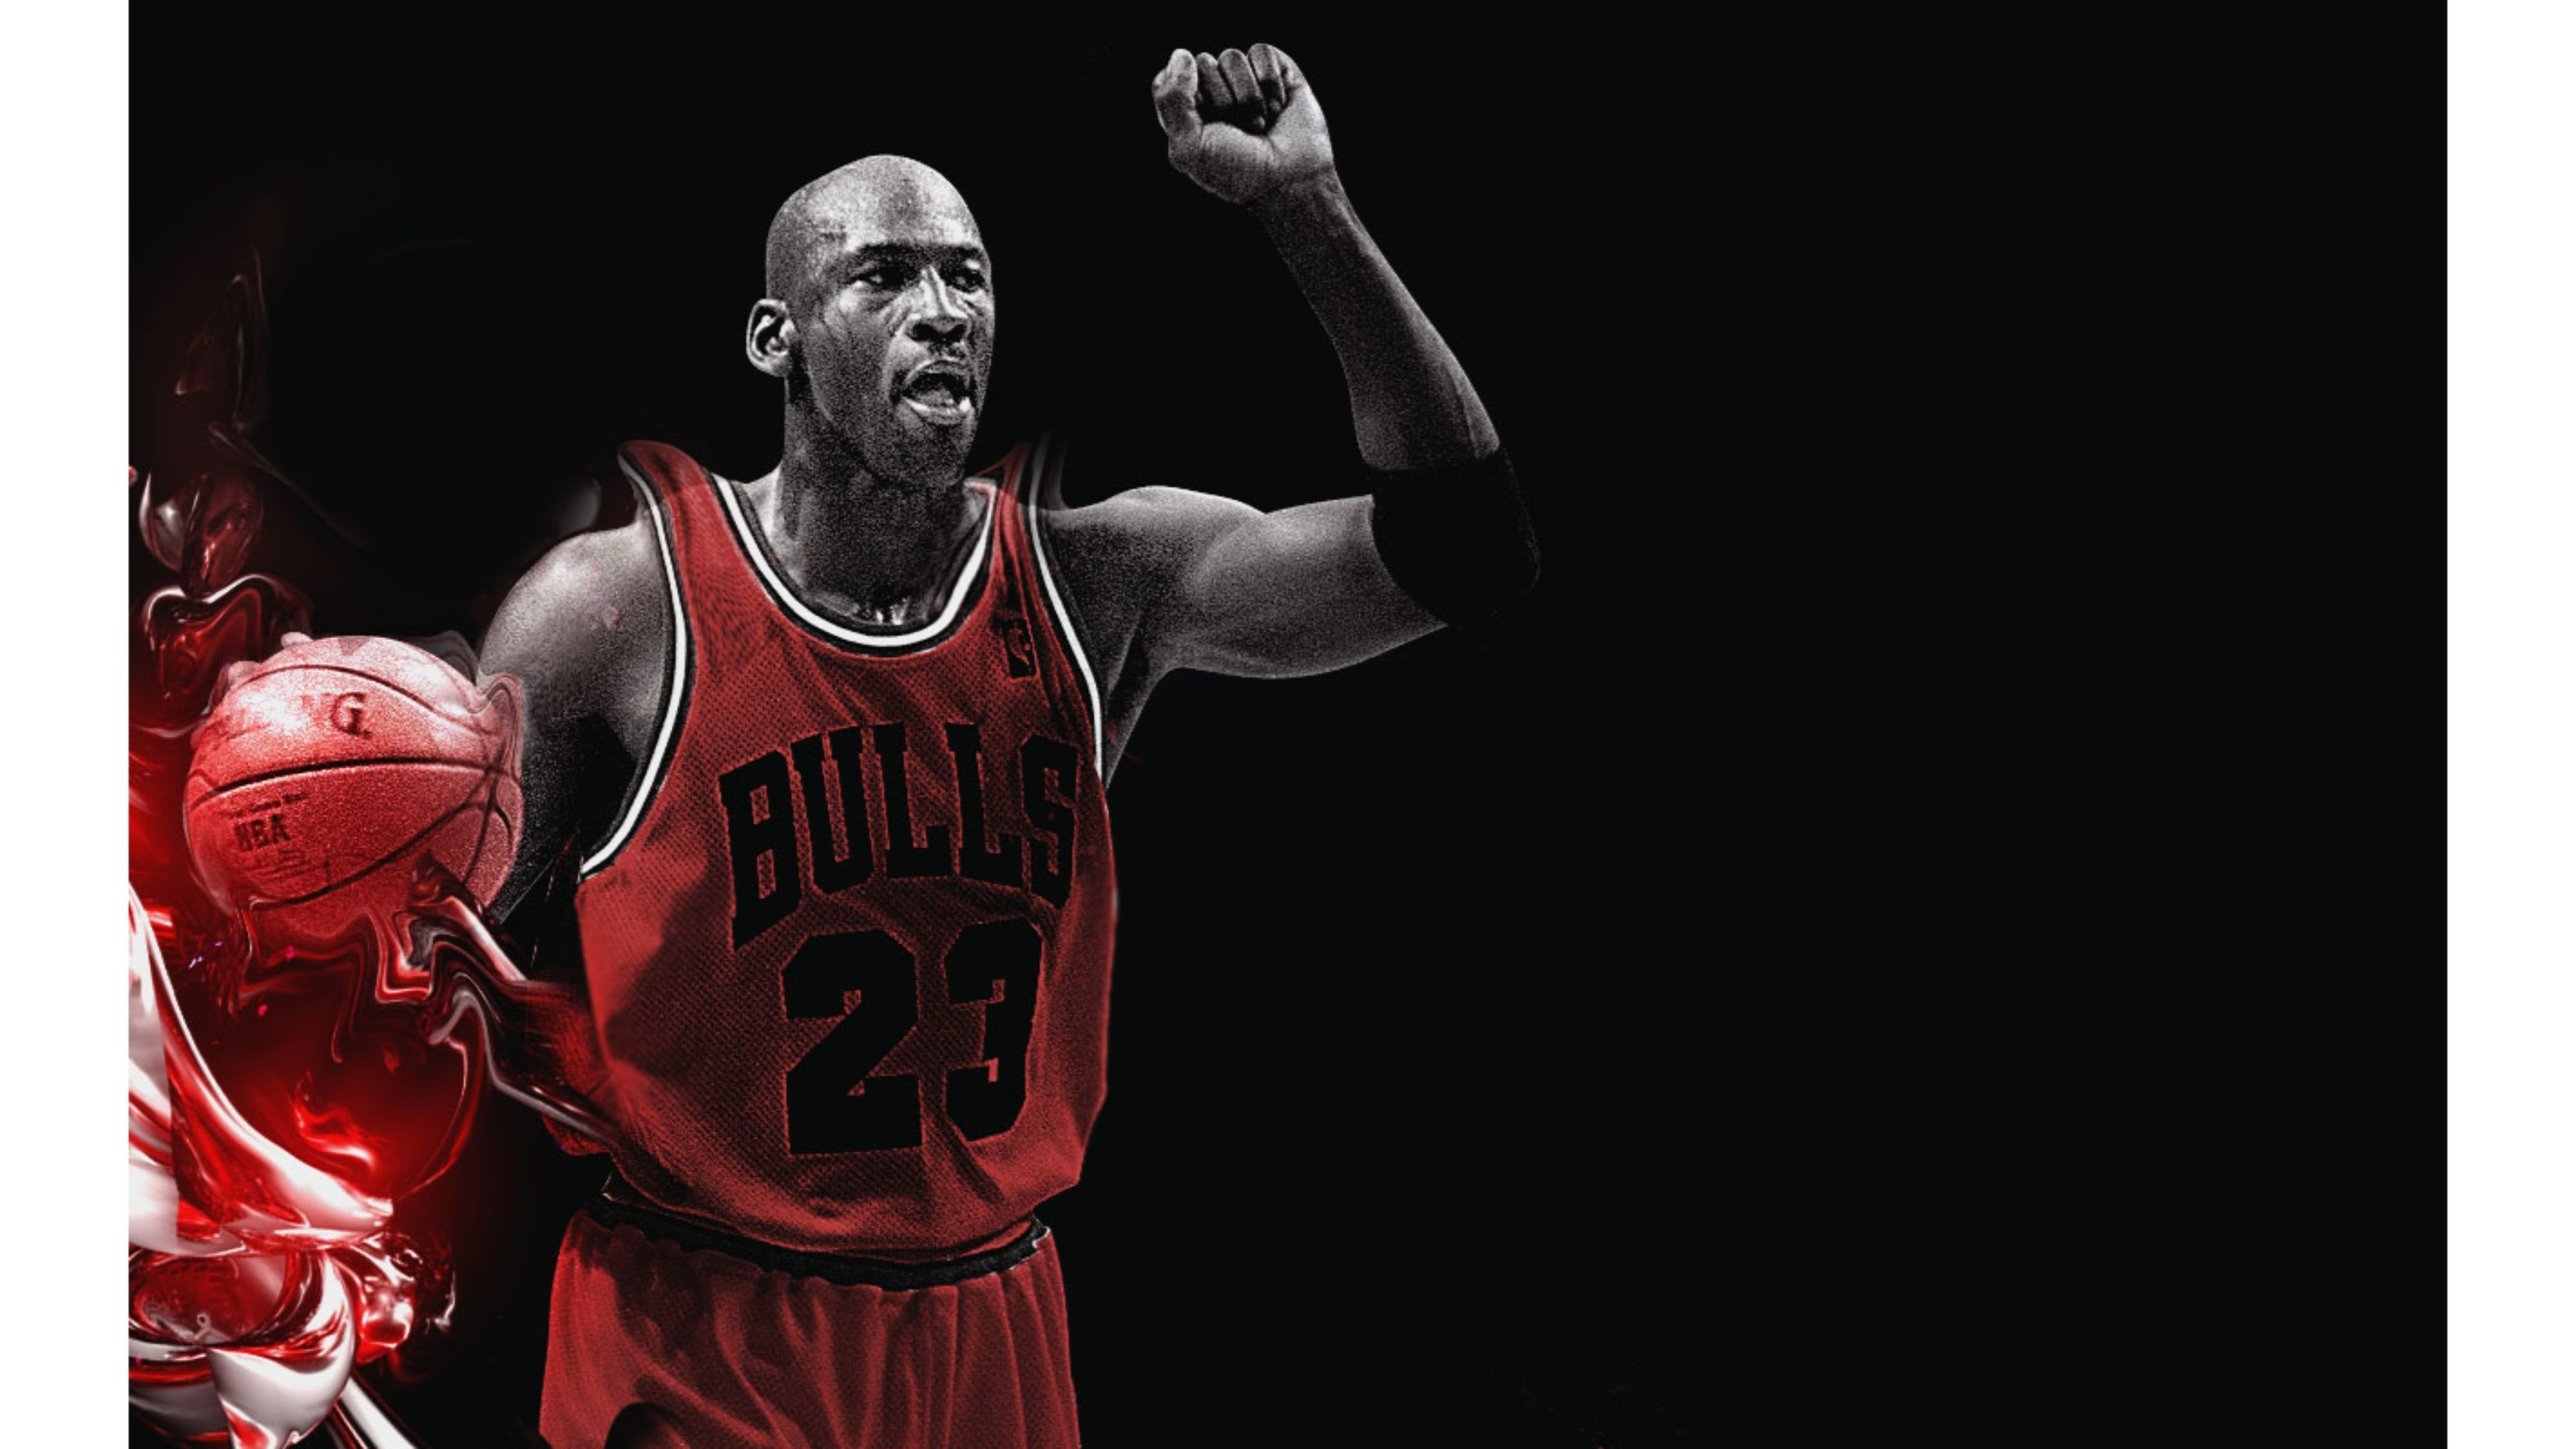 Michael Jordan Wallpaper 1080p: Michael Jordan Wallpaper (84+ Pictures